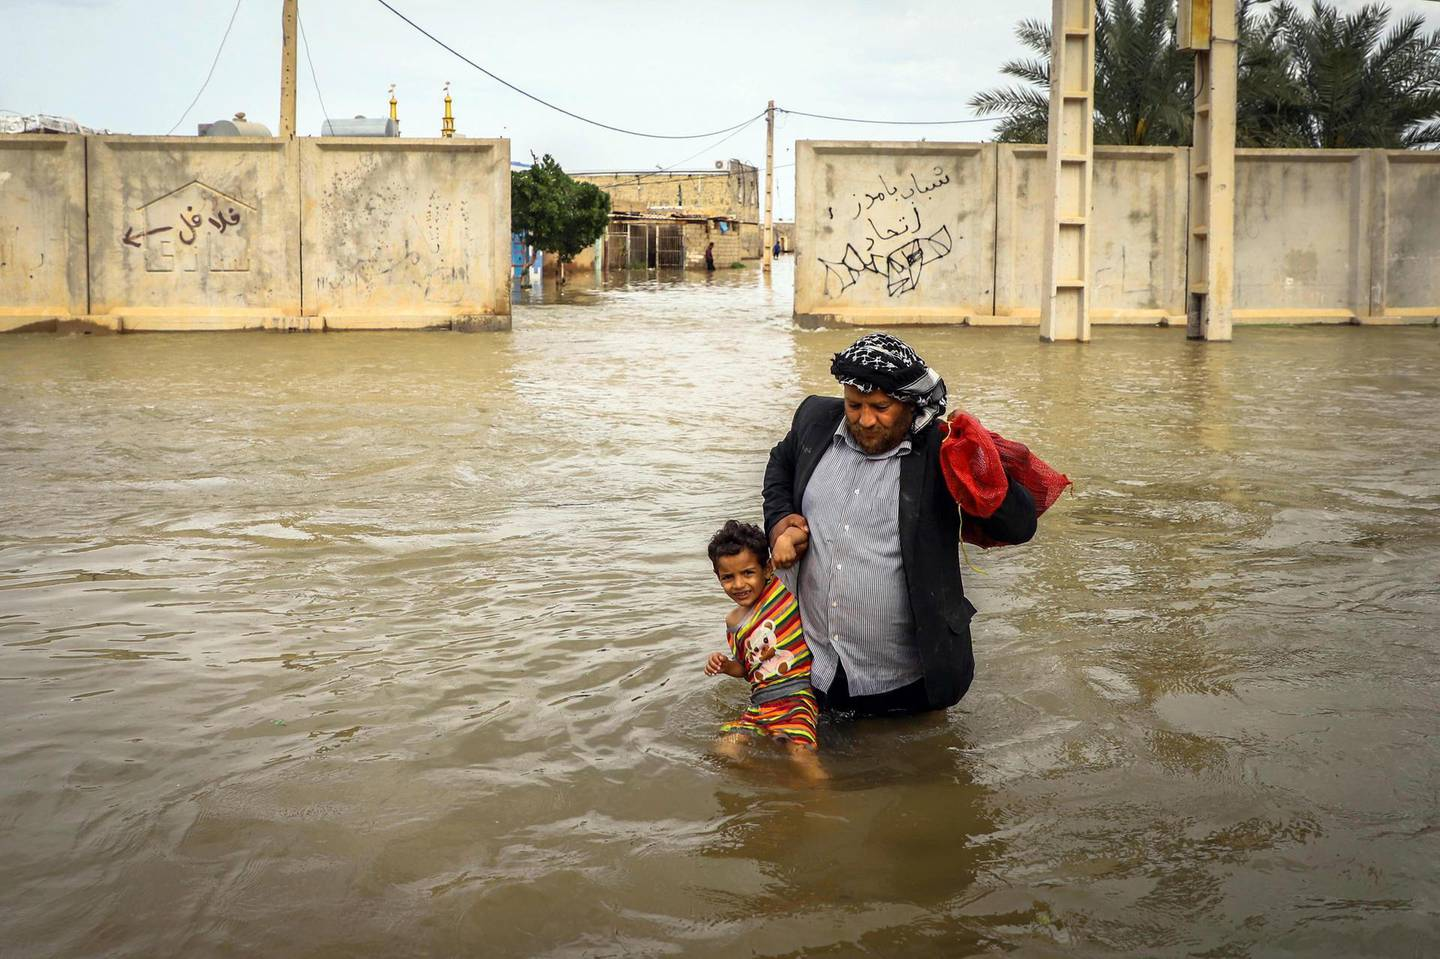 epa07480225 An Iranian man carries his son in a flooded way in a village around the city of Ahvaz, Khuzestan province, Iran, 31 March 2019 (issued 02 April 2019).  At least 45 people have died in the past two weeks after heavy rains, with flooding affecting at least 23 of the country's 31 provinces.  EPA/SAEED SOROUSH